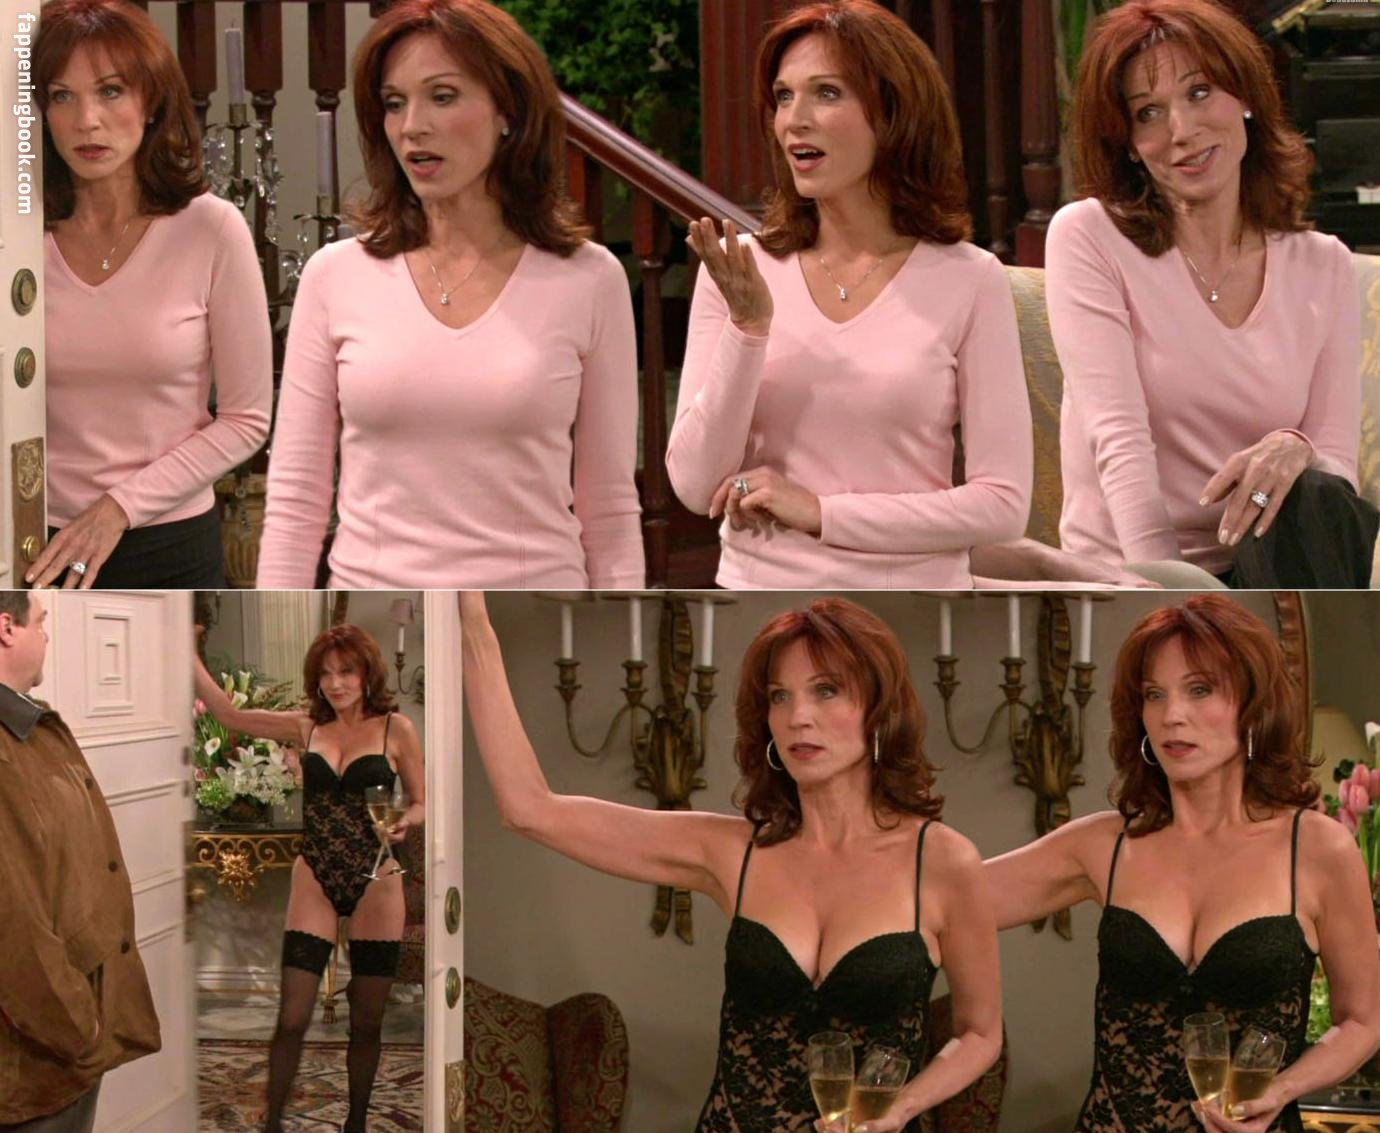 Marilu Henner Nude, Sexy, The Fappening, Uncensored